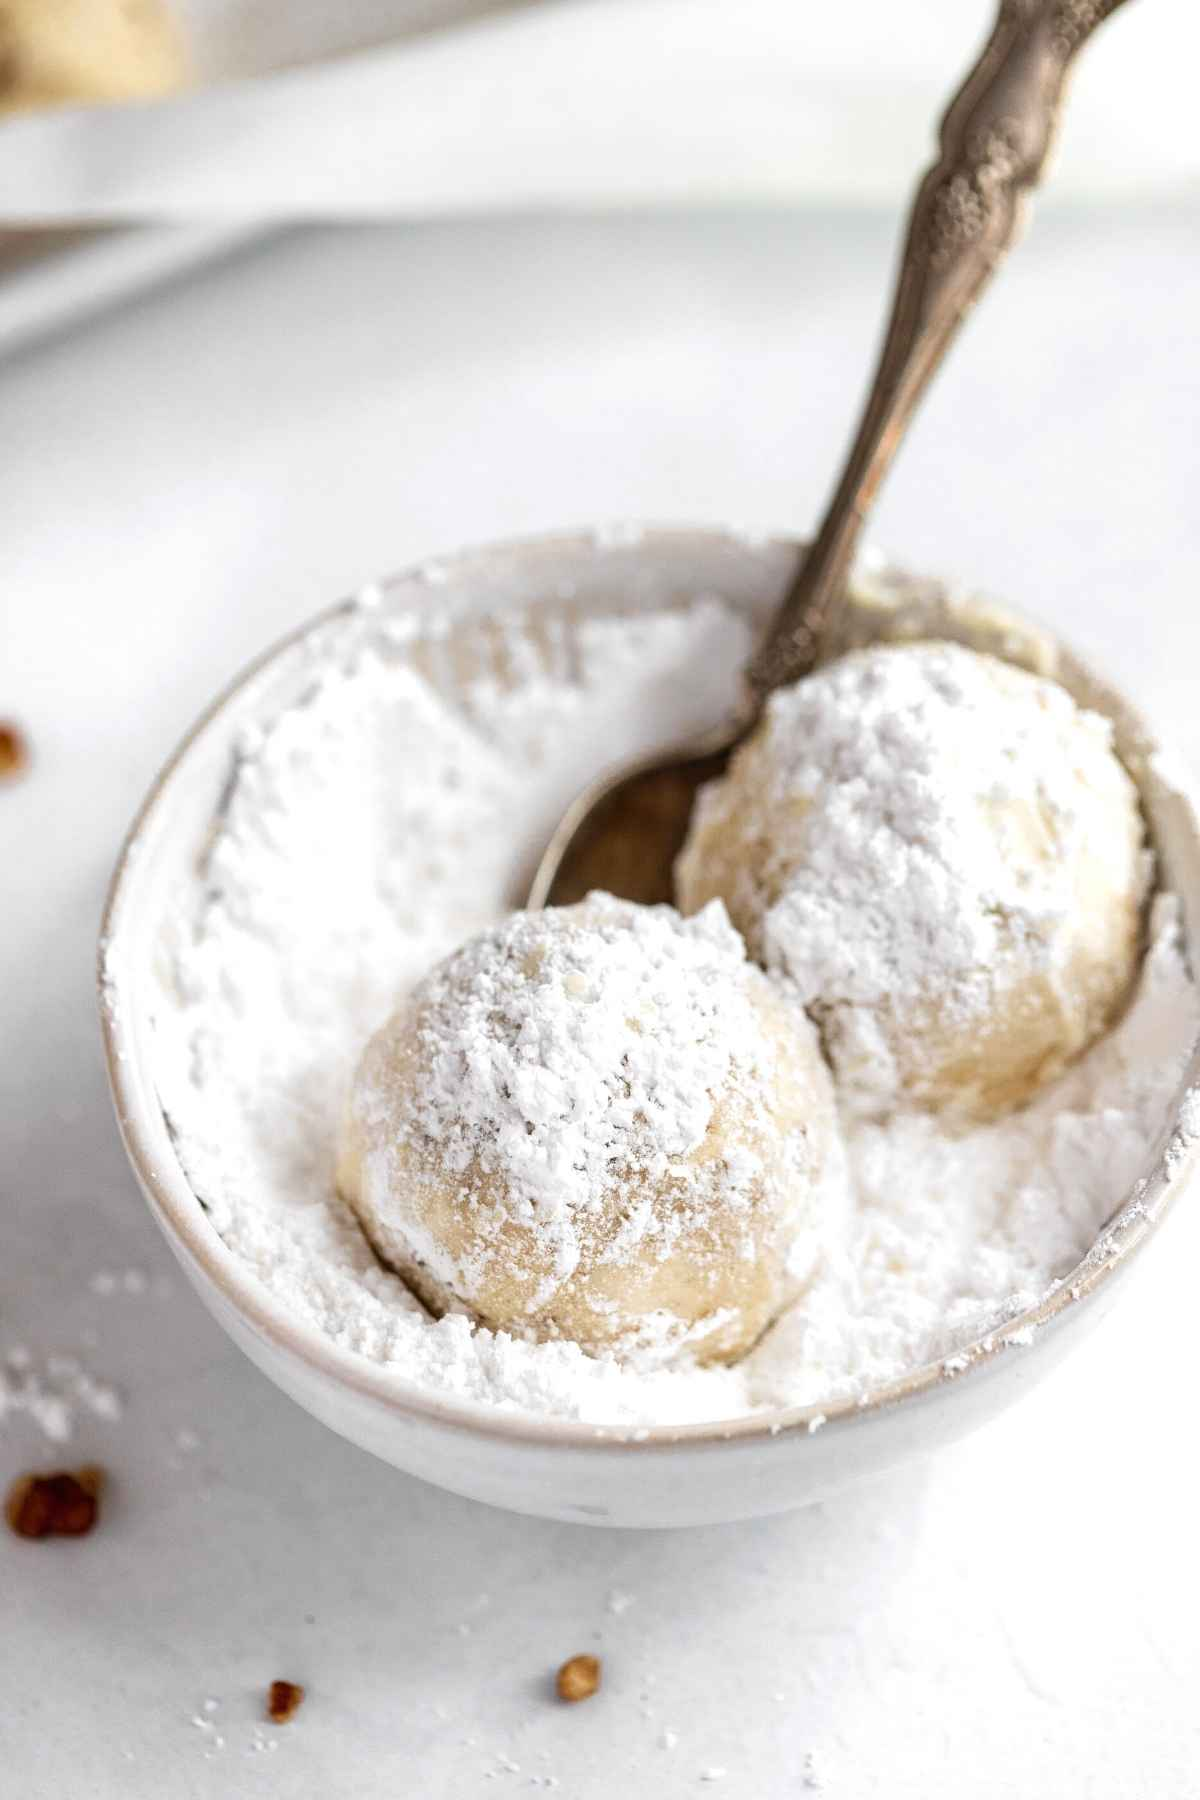 Snowball Cookies being rolled in powdered sugar in bowl with spoon